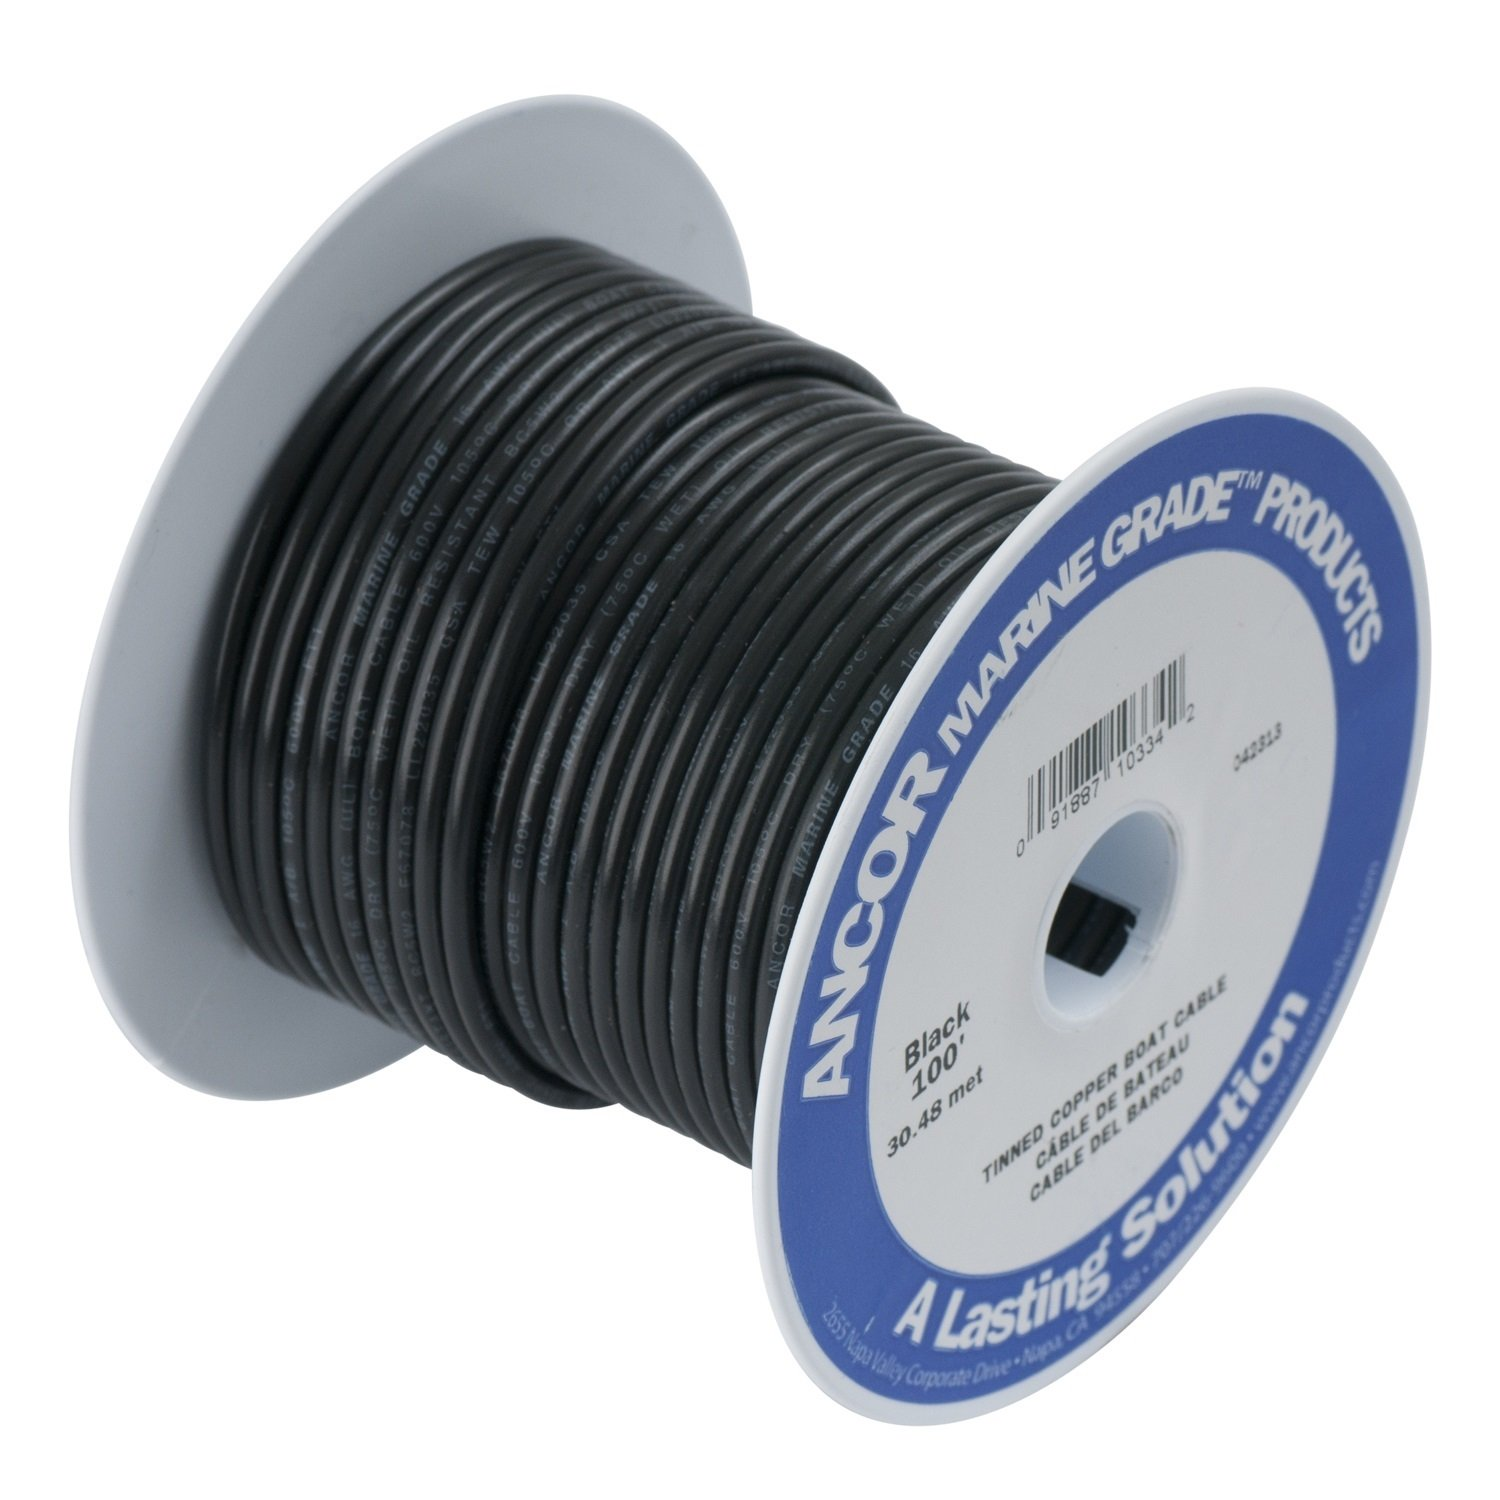 Ancor Marine Grade Primary Wire and Battery Cable (Black, 50 Feet, 4 AWG) by Ancor